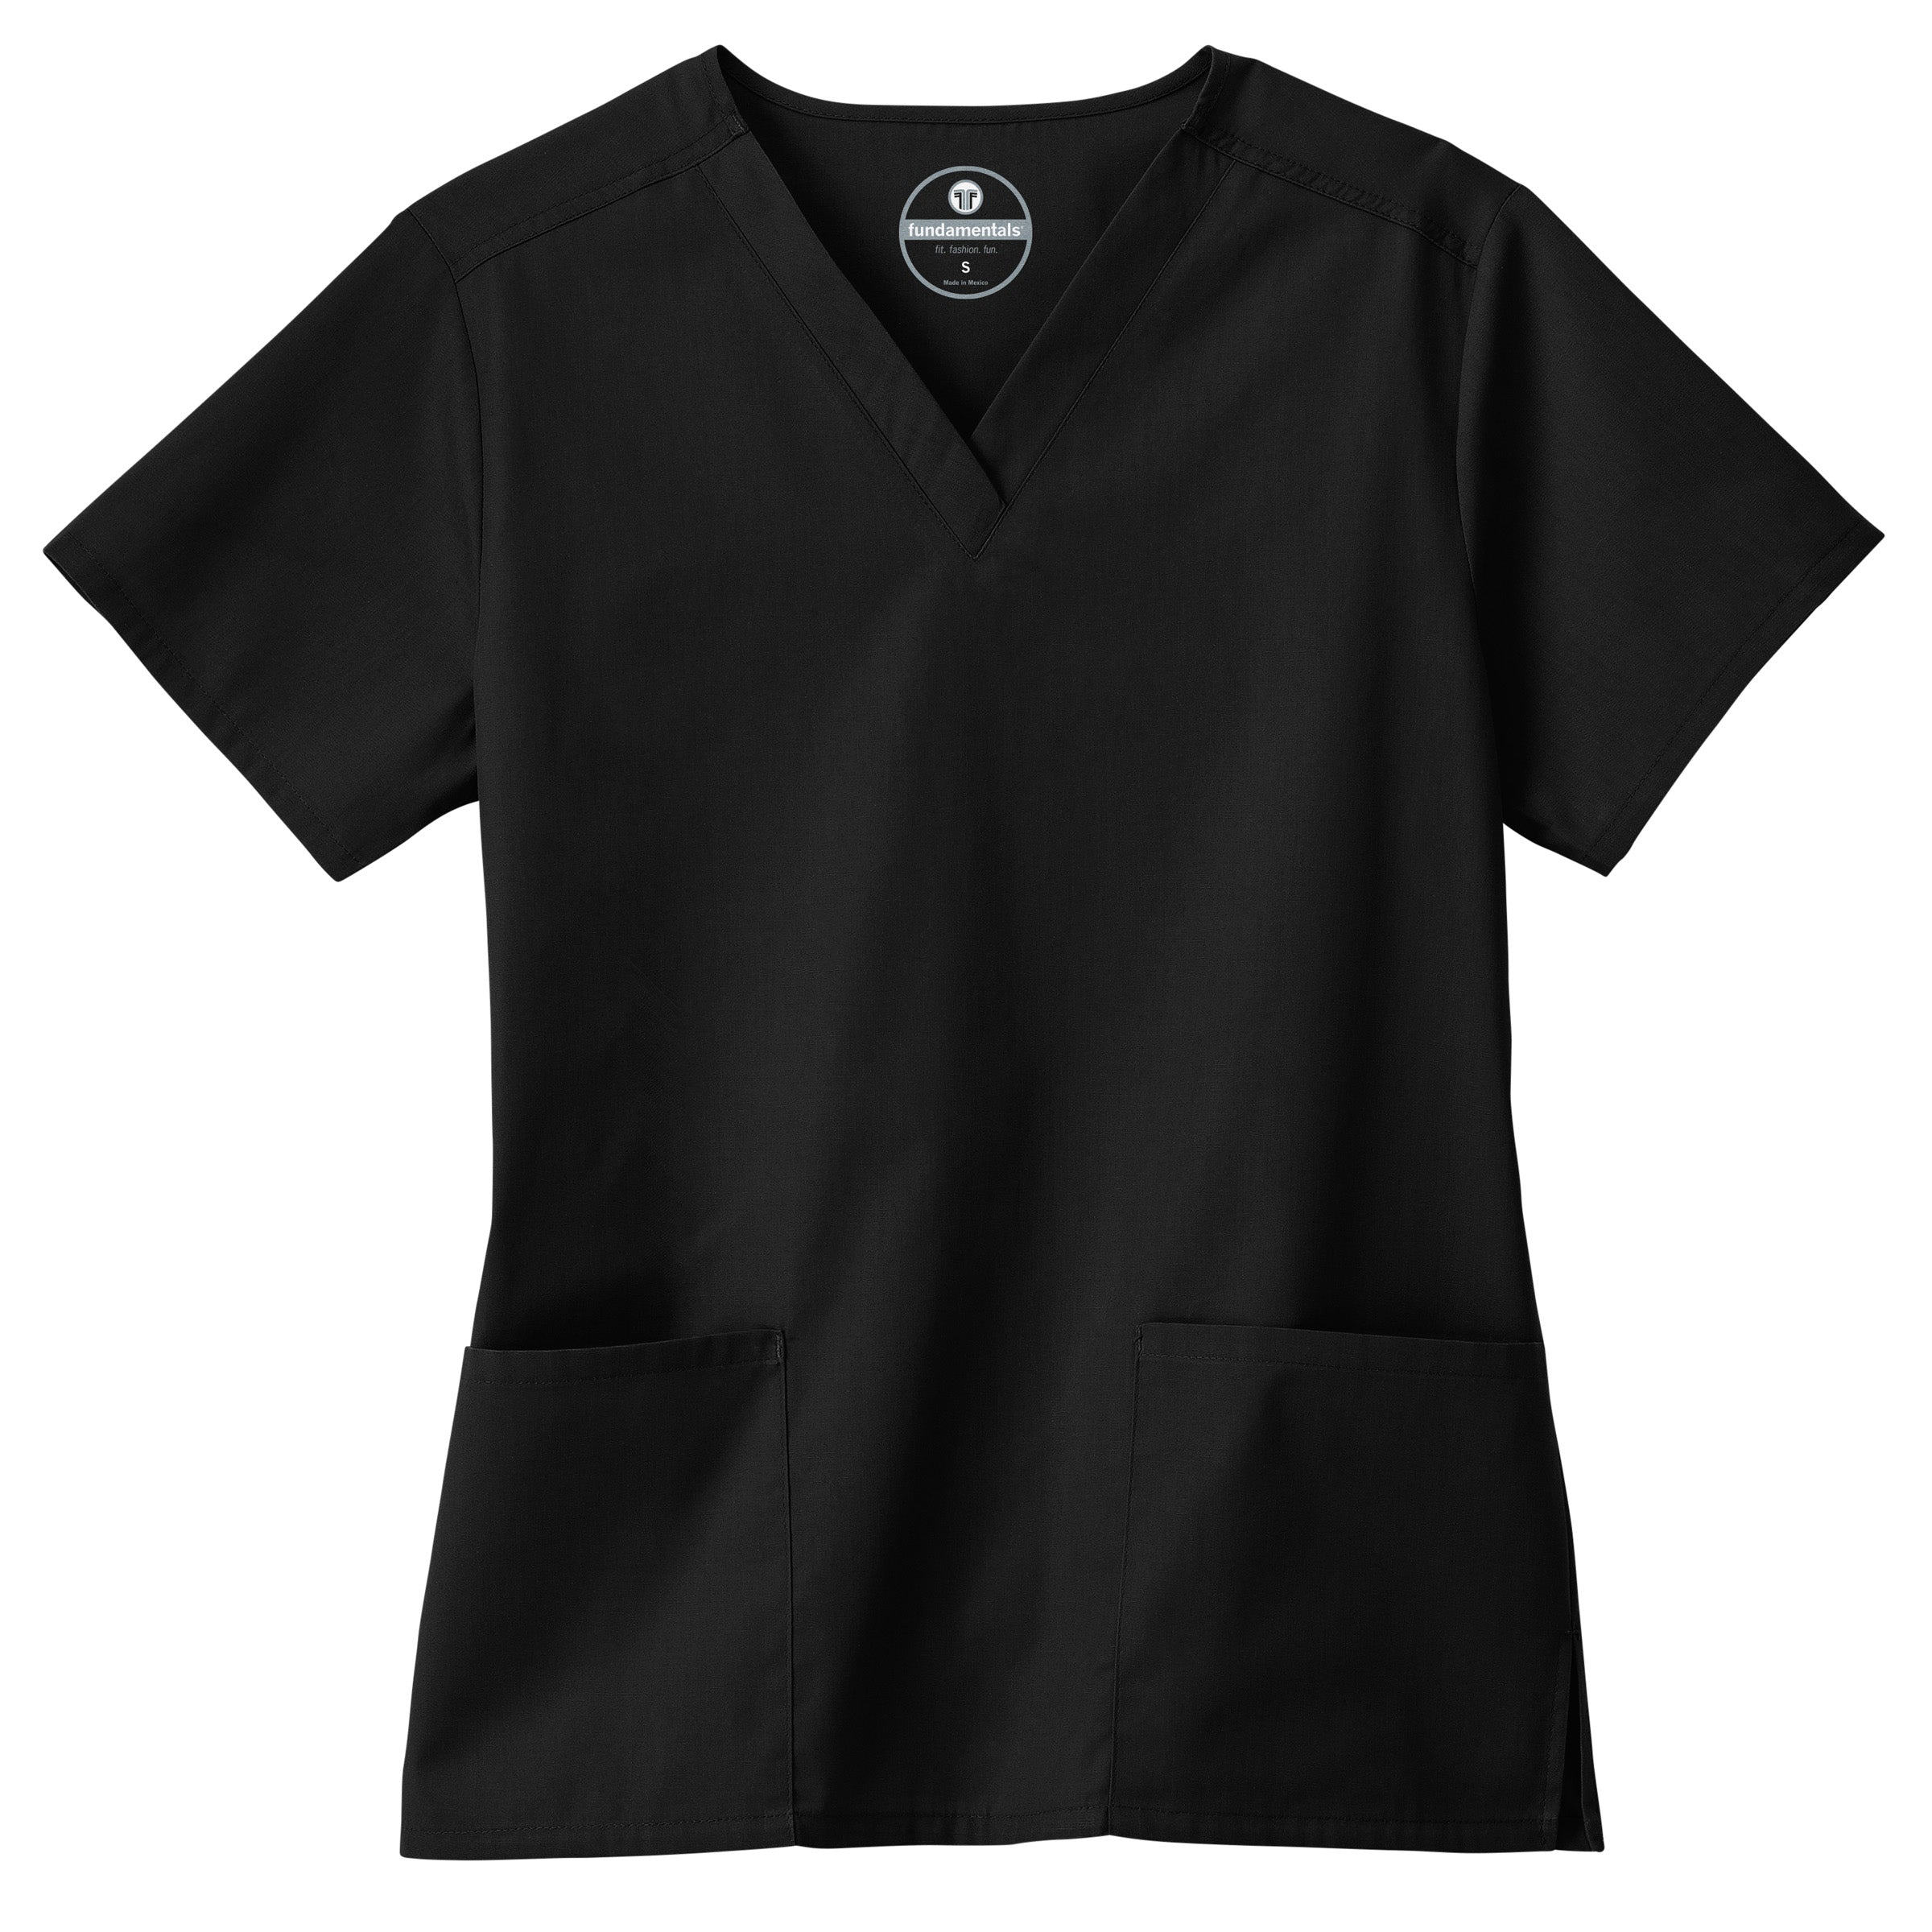 Ladies 2 Pocket V neck Top by Fundamentals w/Ochsner logo